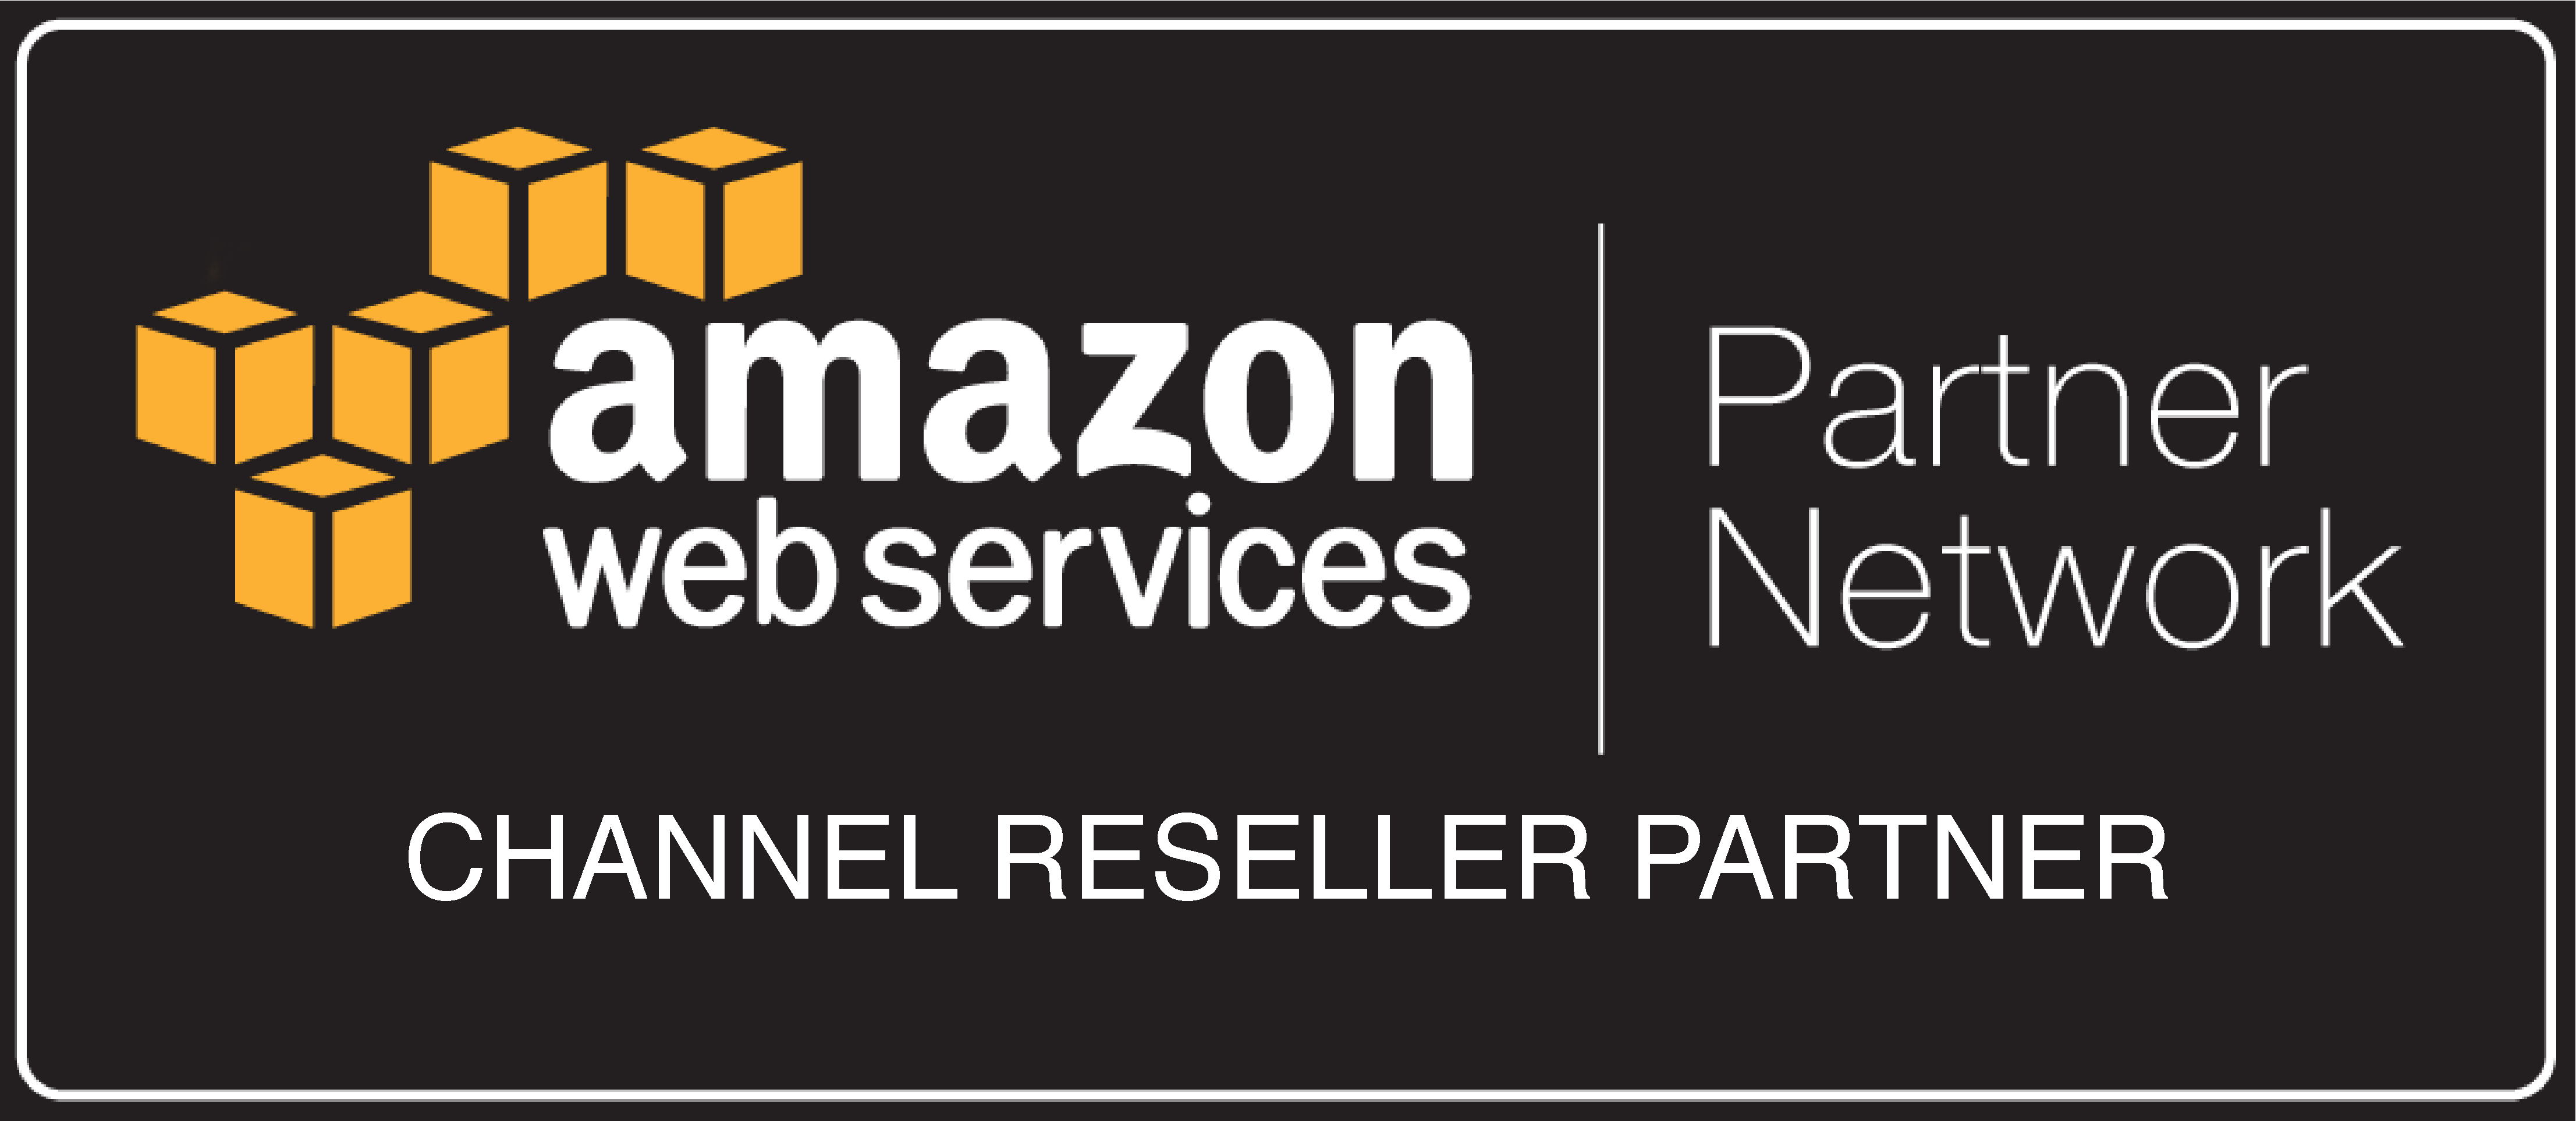 AWS Logo - Channel Reseller Partner